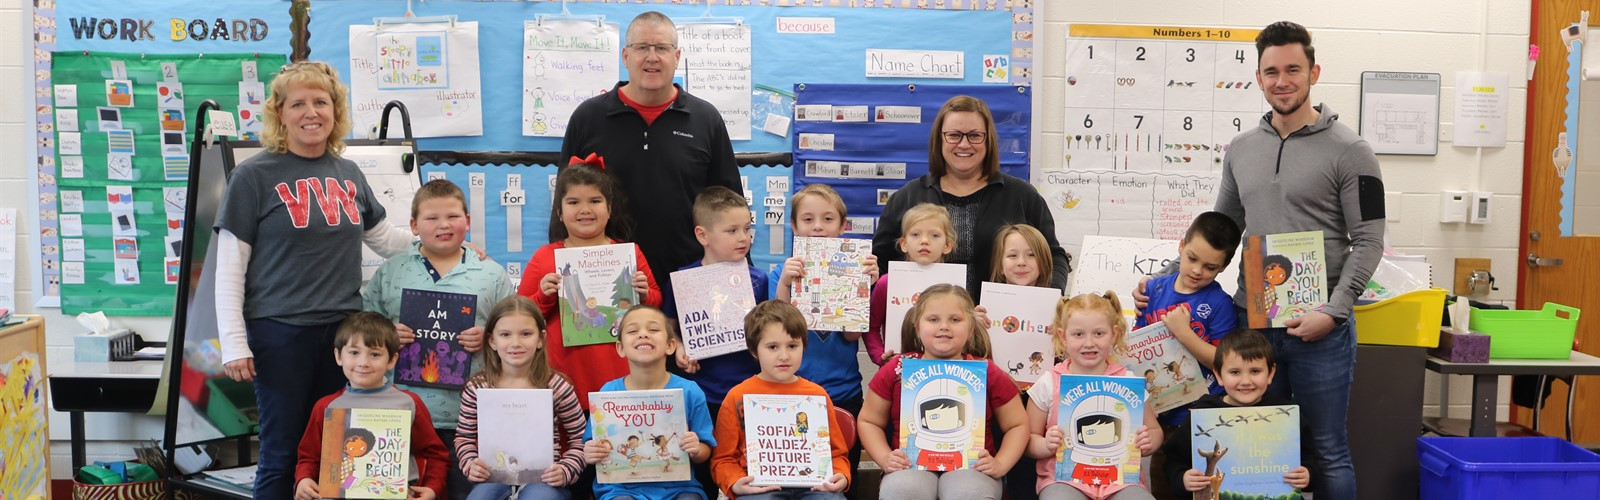 Mrs. Foster's class posing with books that were received as part of a grant